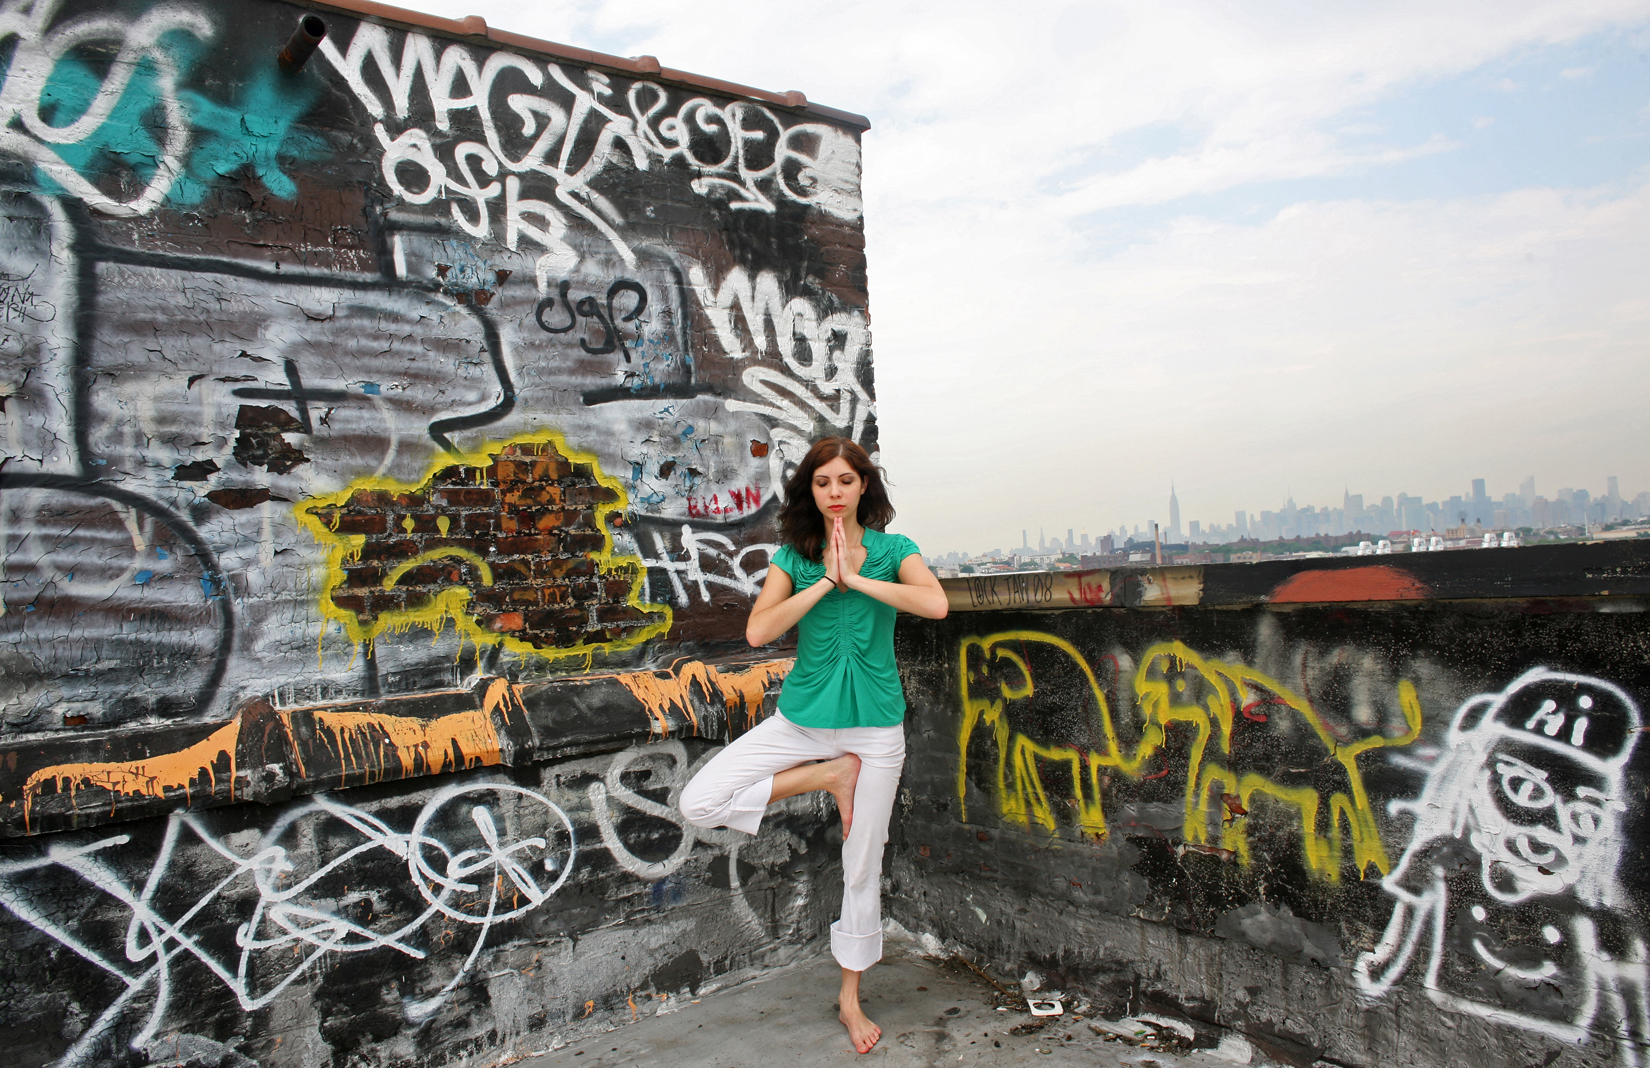 Erin Laubenheimer, in a yoga pose on the rooftop of her apartment building in the Bushwick neighborhood of Brooklyn, NY, on June 26, 2009.  Laubenheimer is an artist looking for work, who does yoga in her spare time to reduce stress. (For The New York Times)